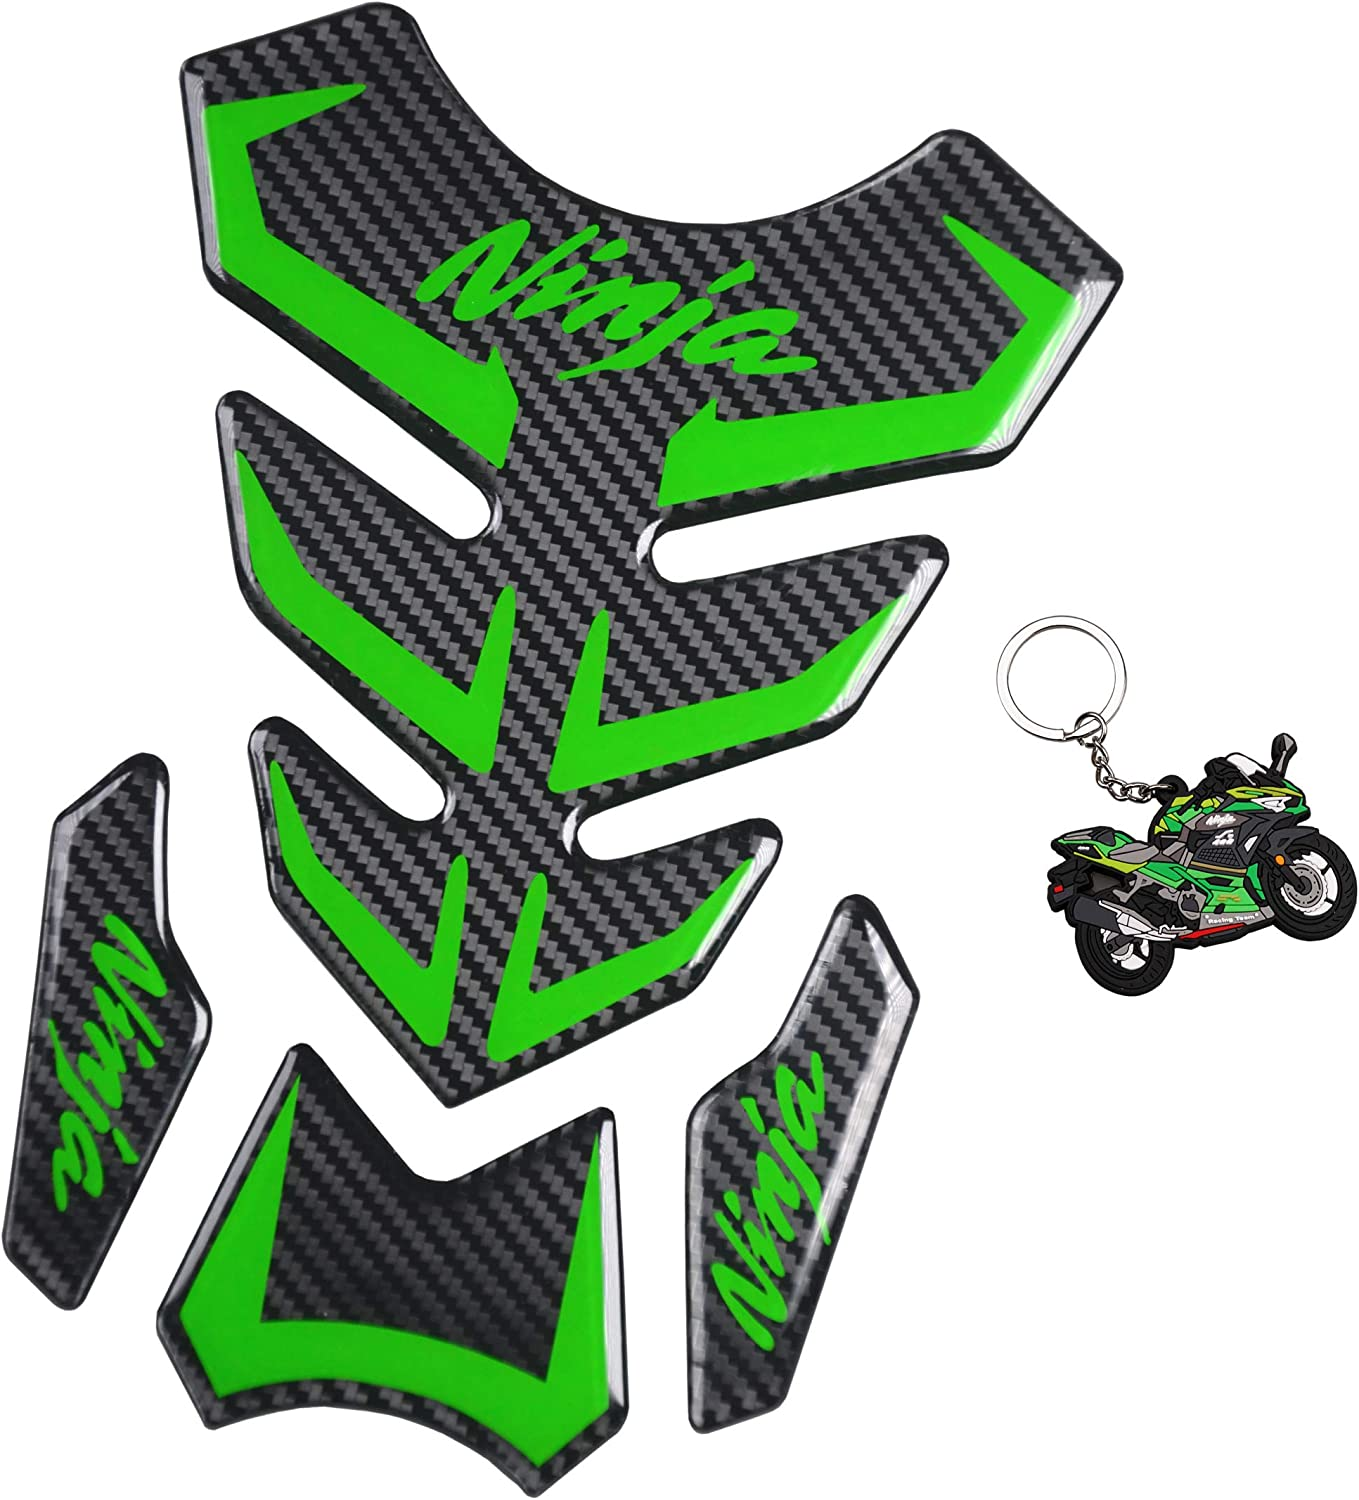 Elegant REVSOSTAR 5D Real Carbon Fiber Prot Tank A surprise price is realized Vinyl Decal Motorcycle